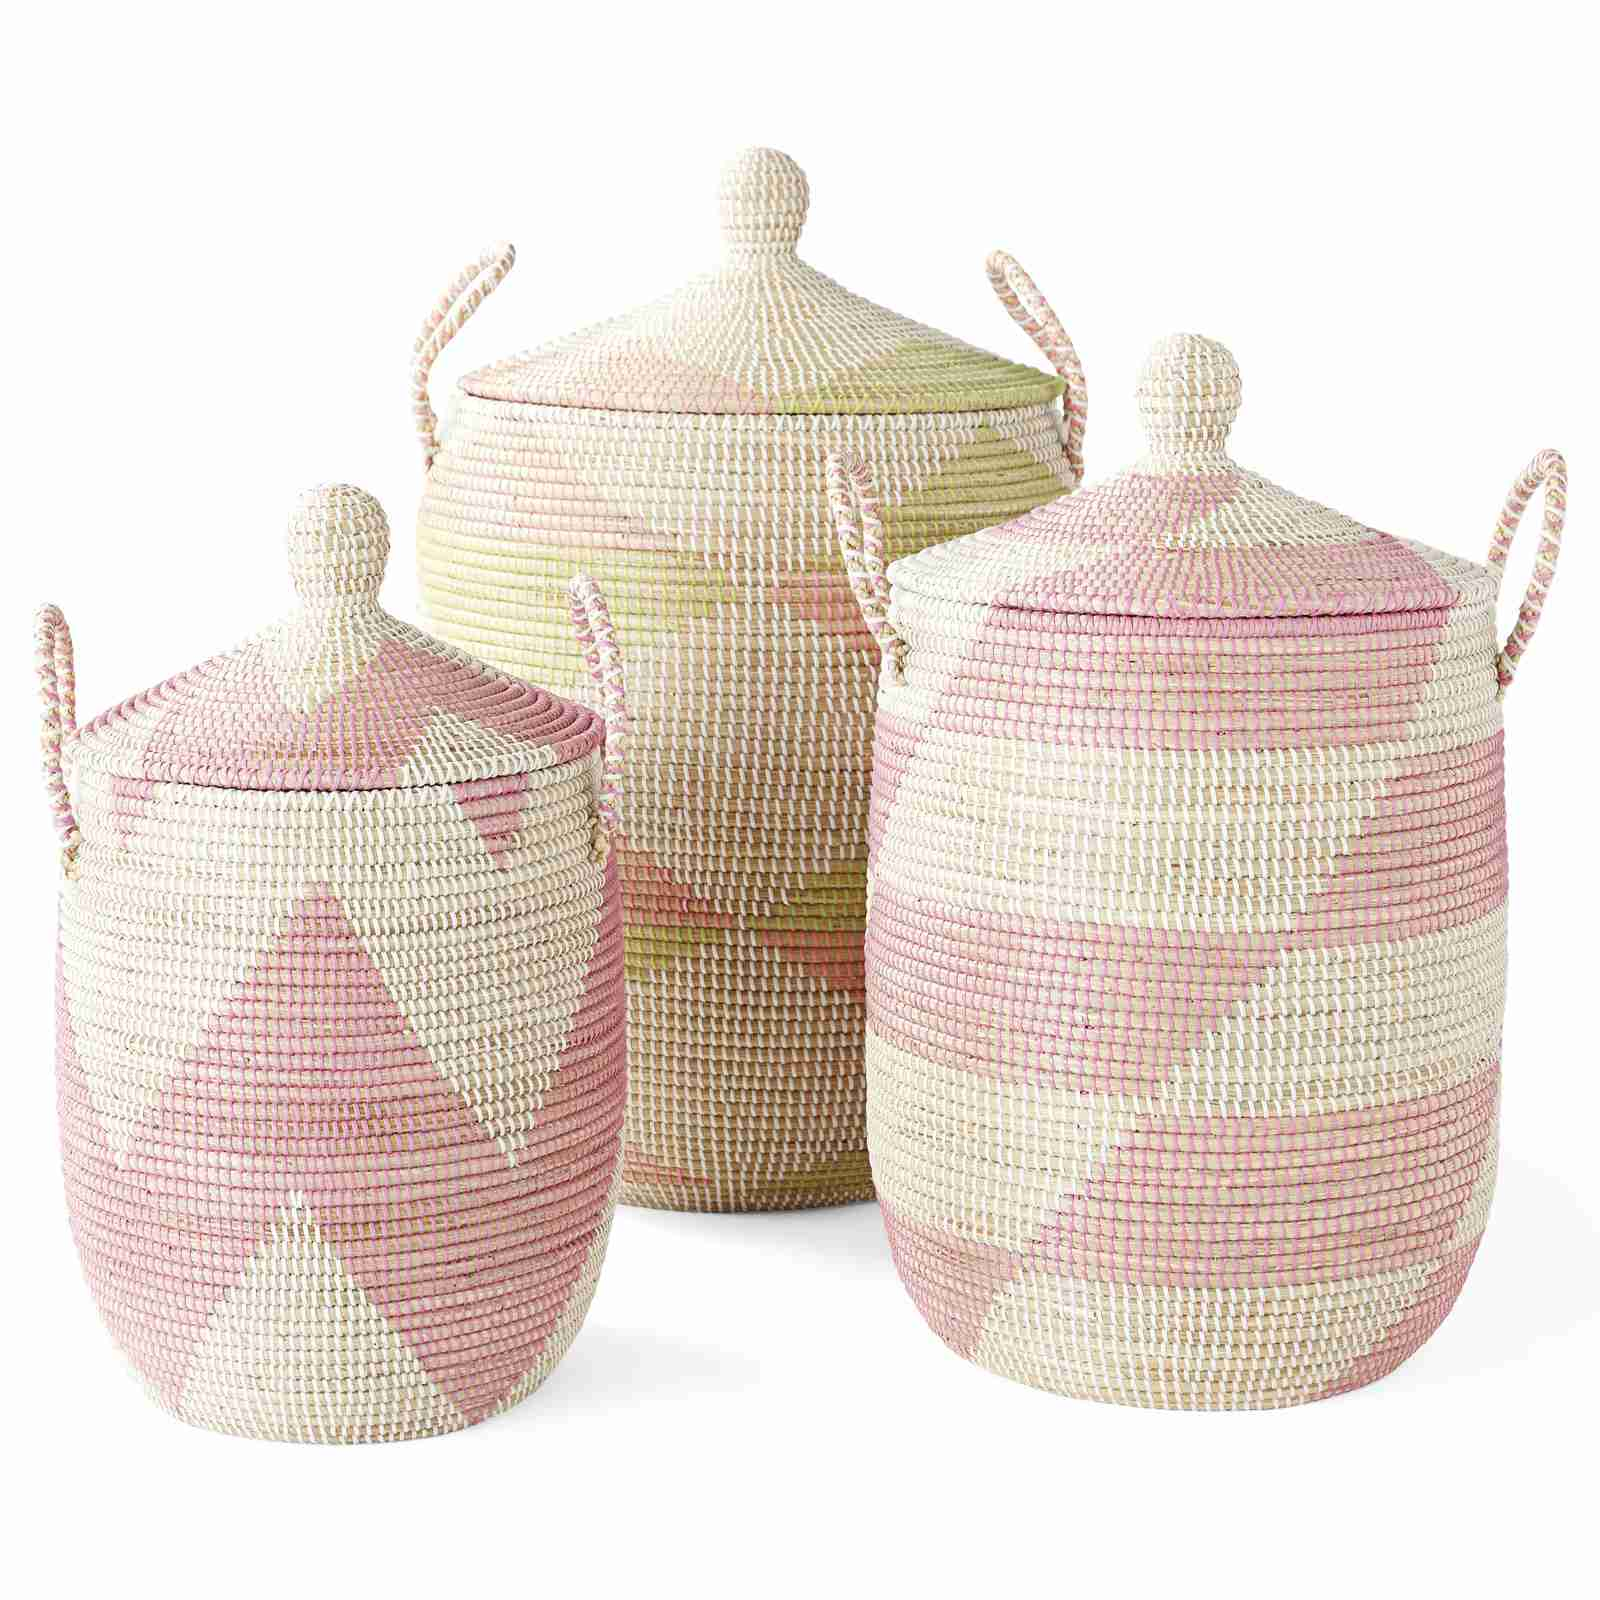 Pink and white woven baskets